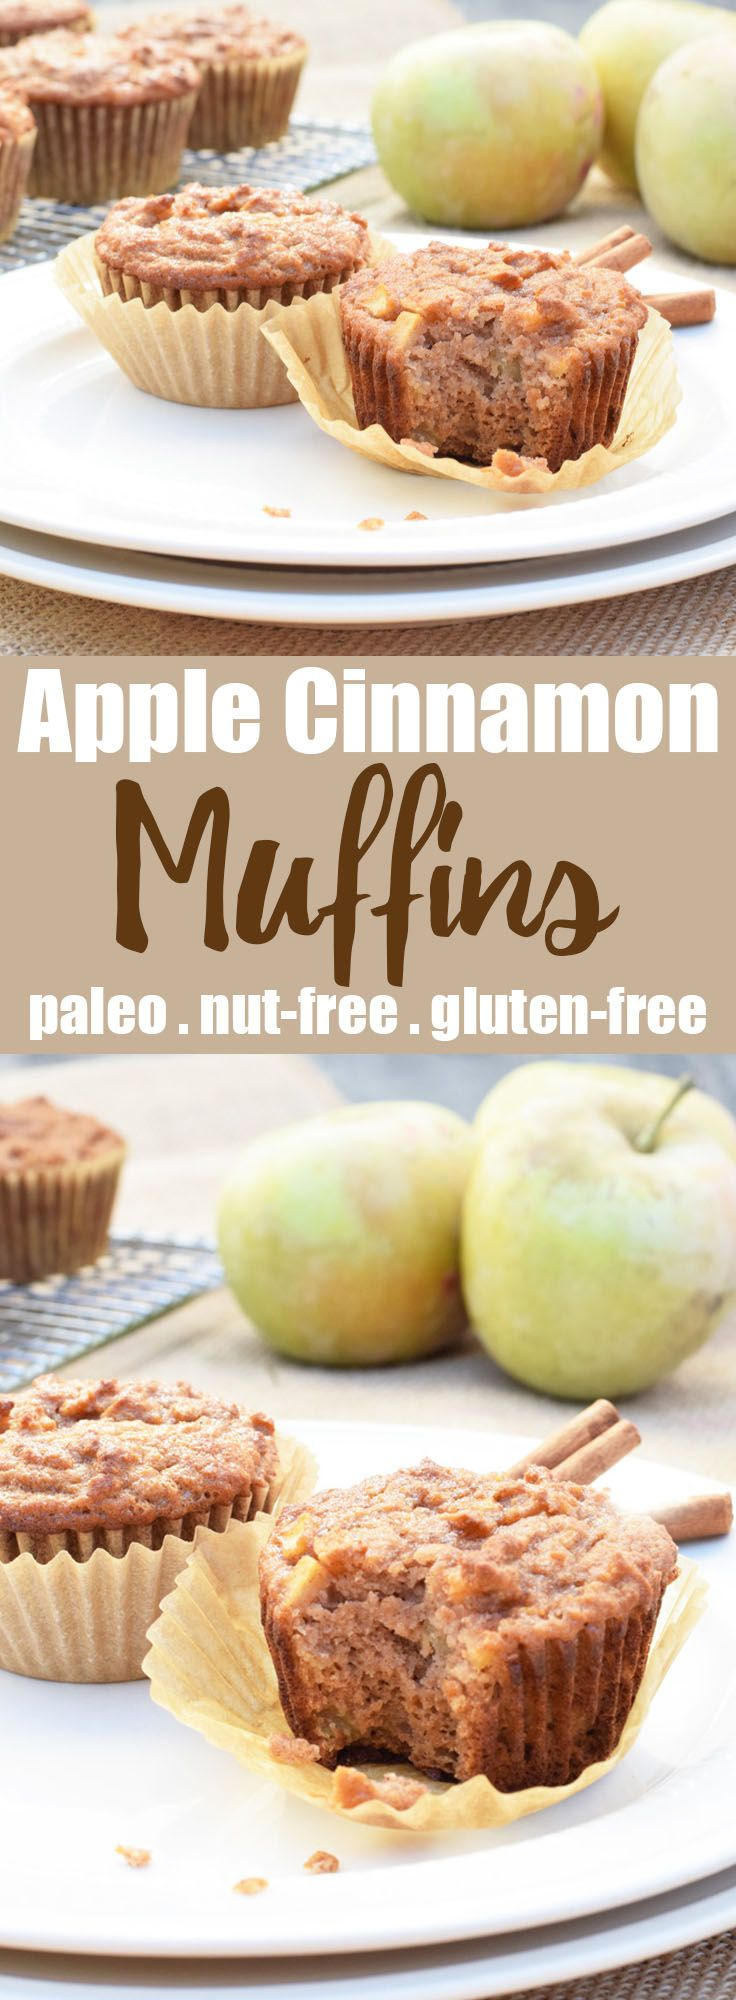 Apple Cinnamon Muffins from Living Loving Paleo!   paleo, nut-free, gluten-free & dairy-free   The perfect not-so-sweet treat, snack or breakfast on the run! These are extra delicious served warm and topped with ghee or almond butter!